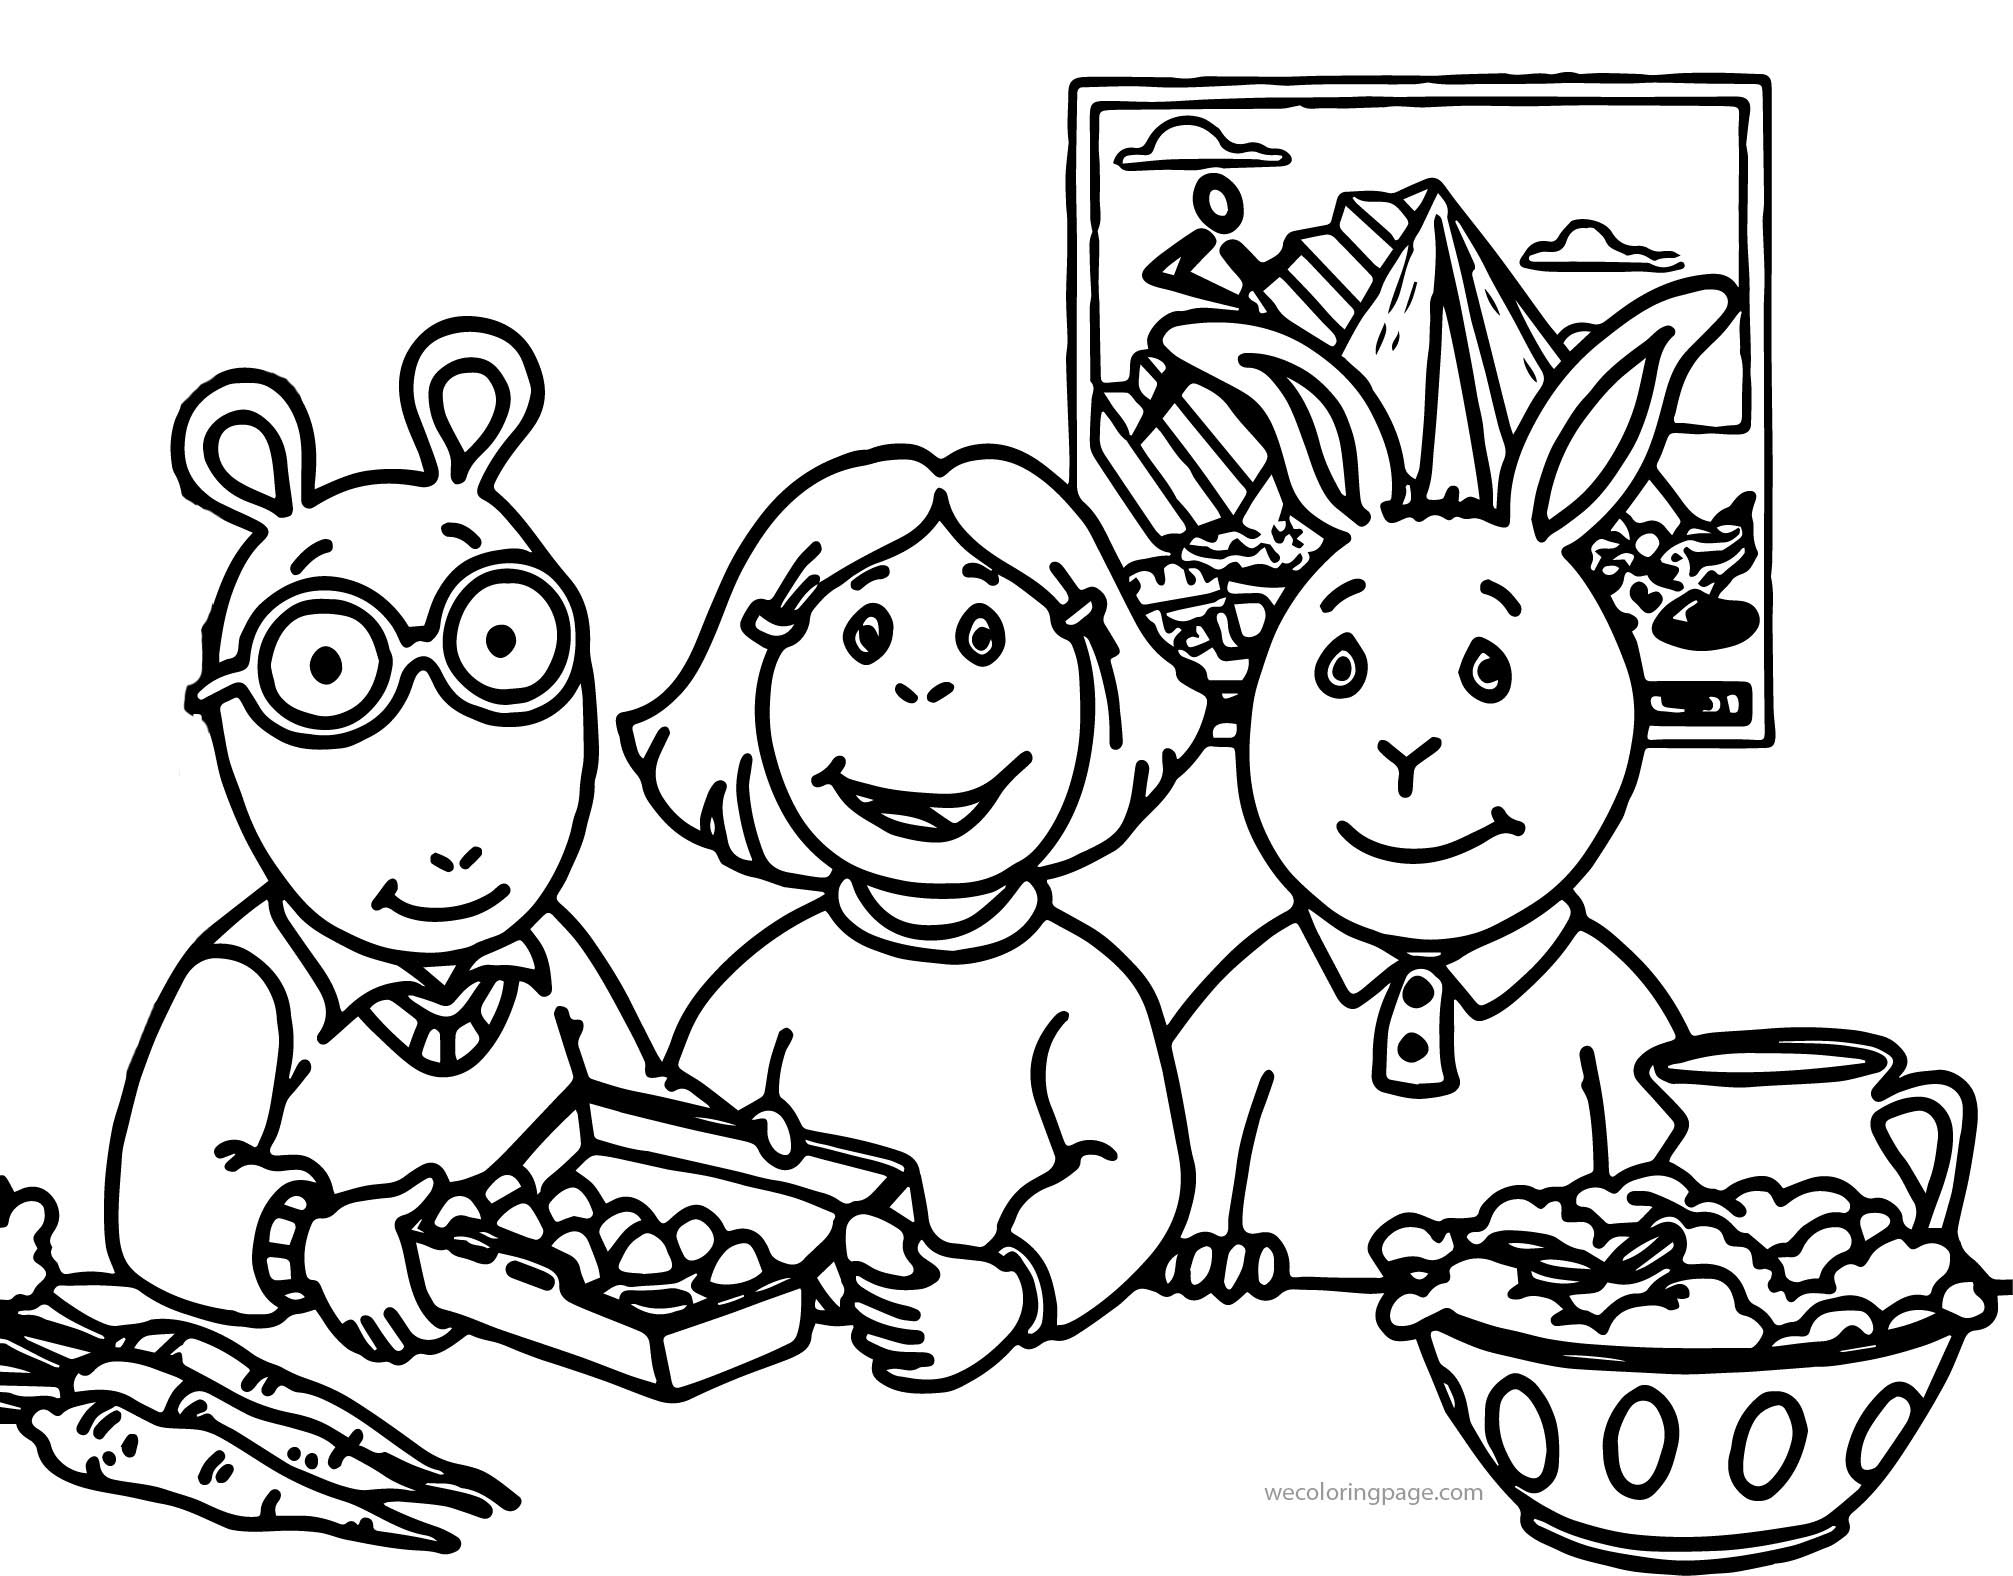 arthur pbs kids coloring page pbs kids coloring